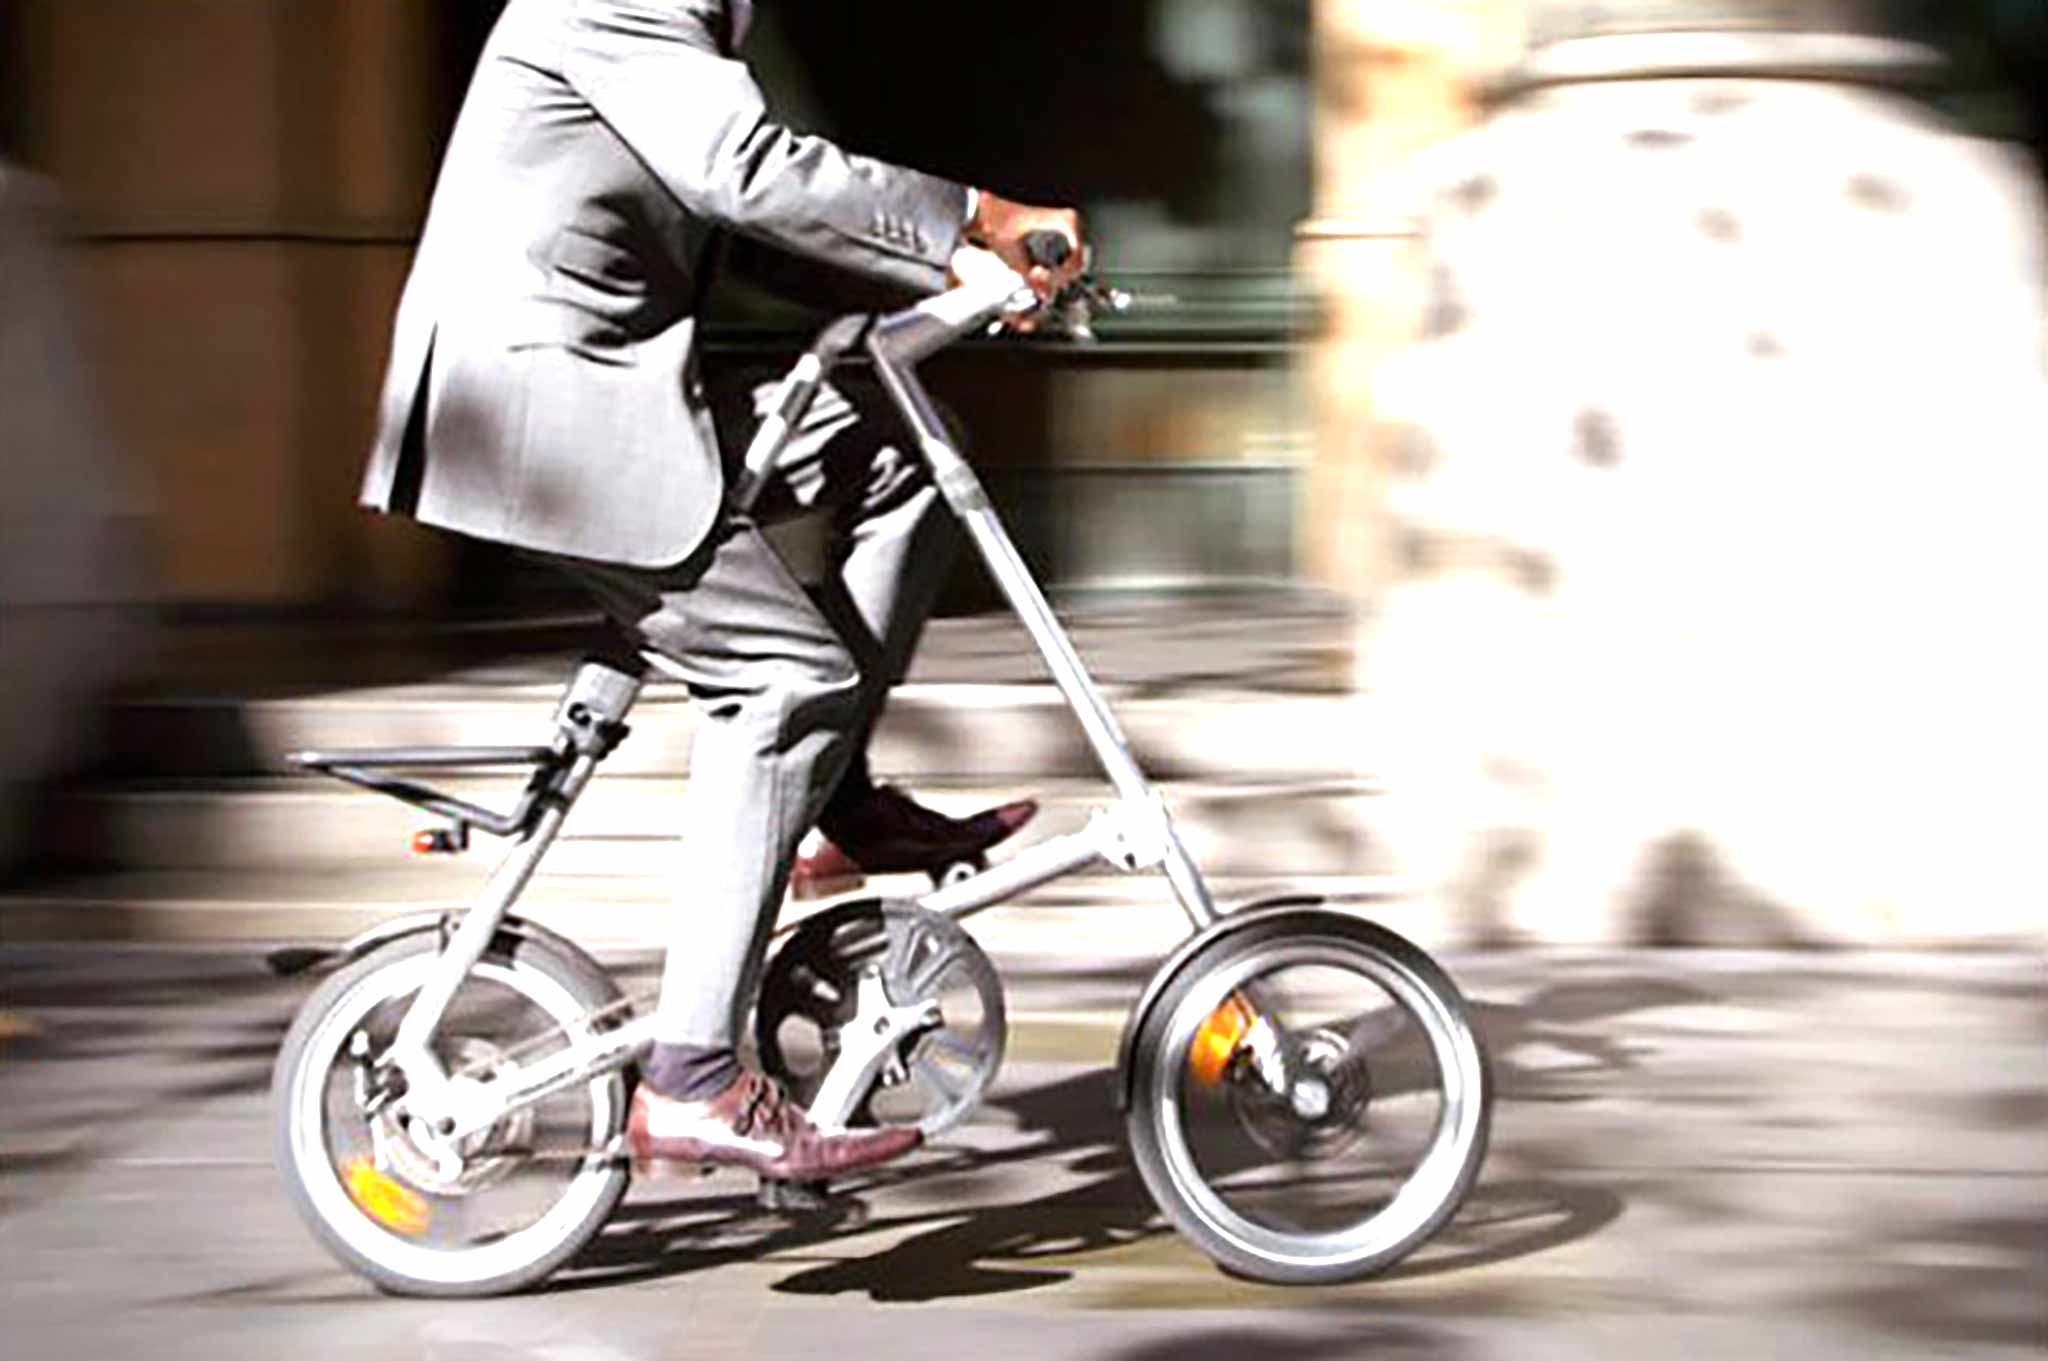 A Strida via your work!